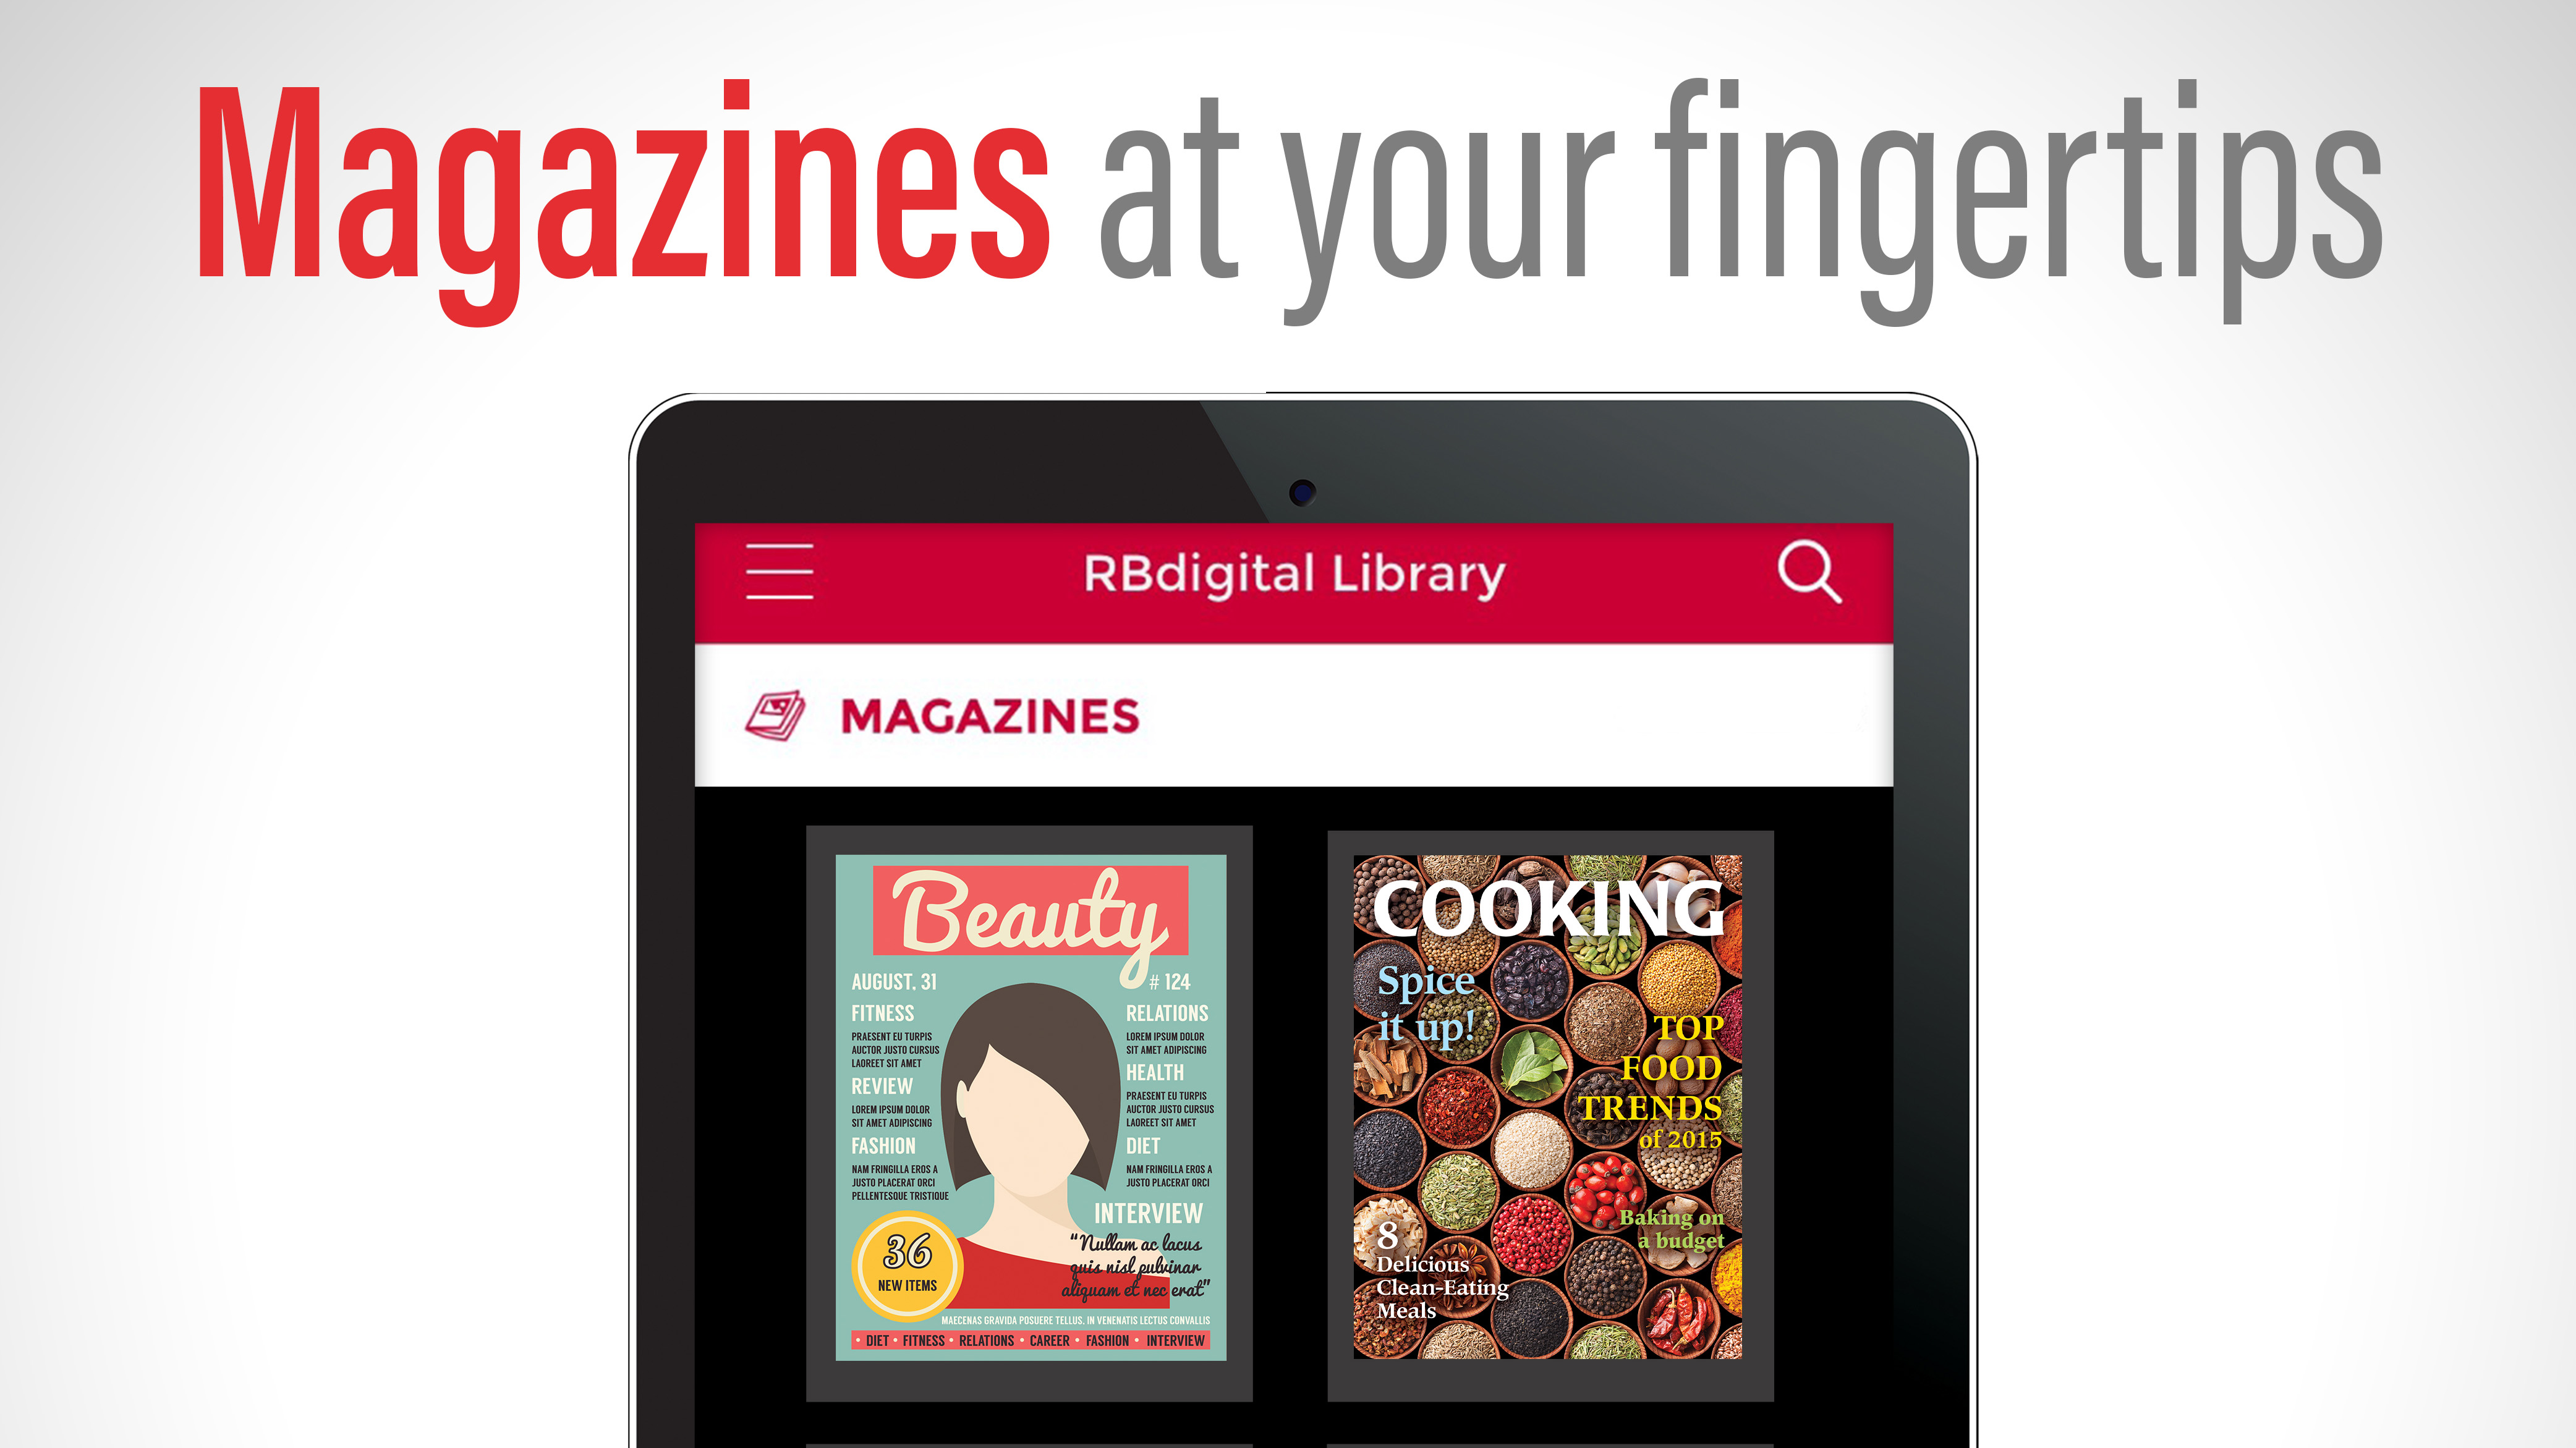 rbdigital-magazines-at-your-fingertips